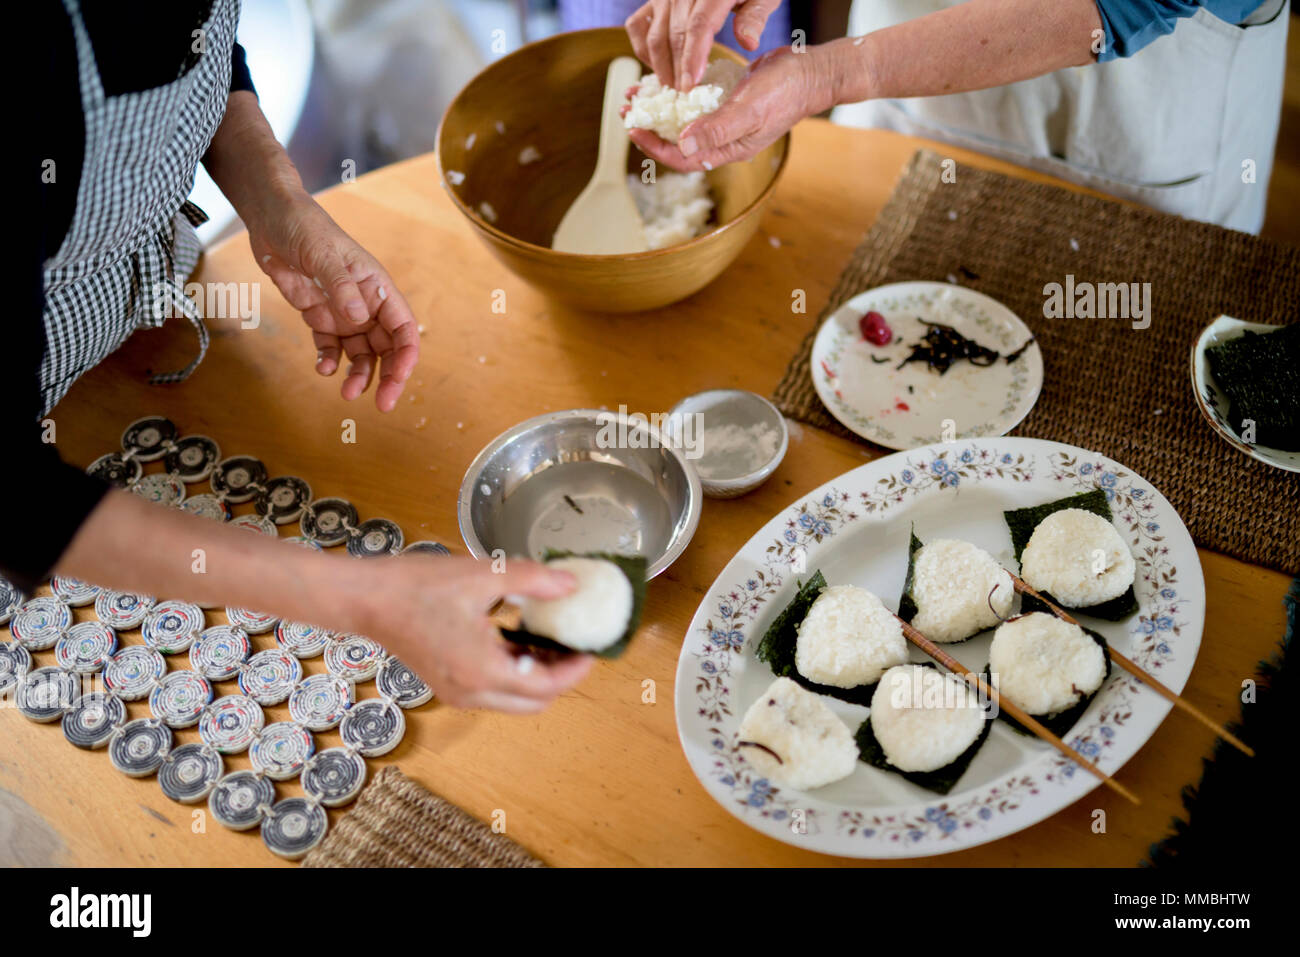 High angle close up of two women standing at a table, preparing plate of sushi. - Stock Image